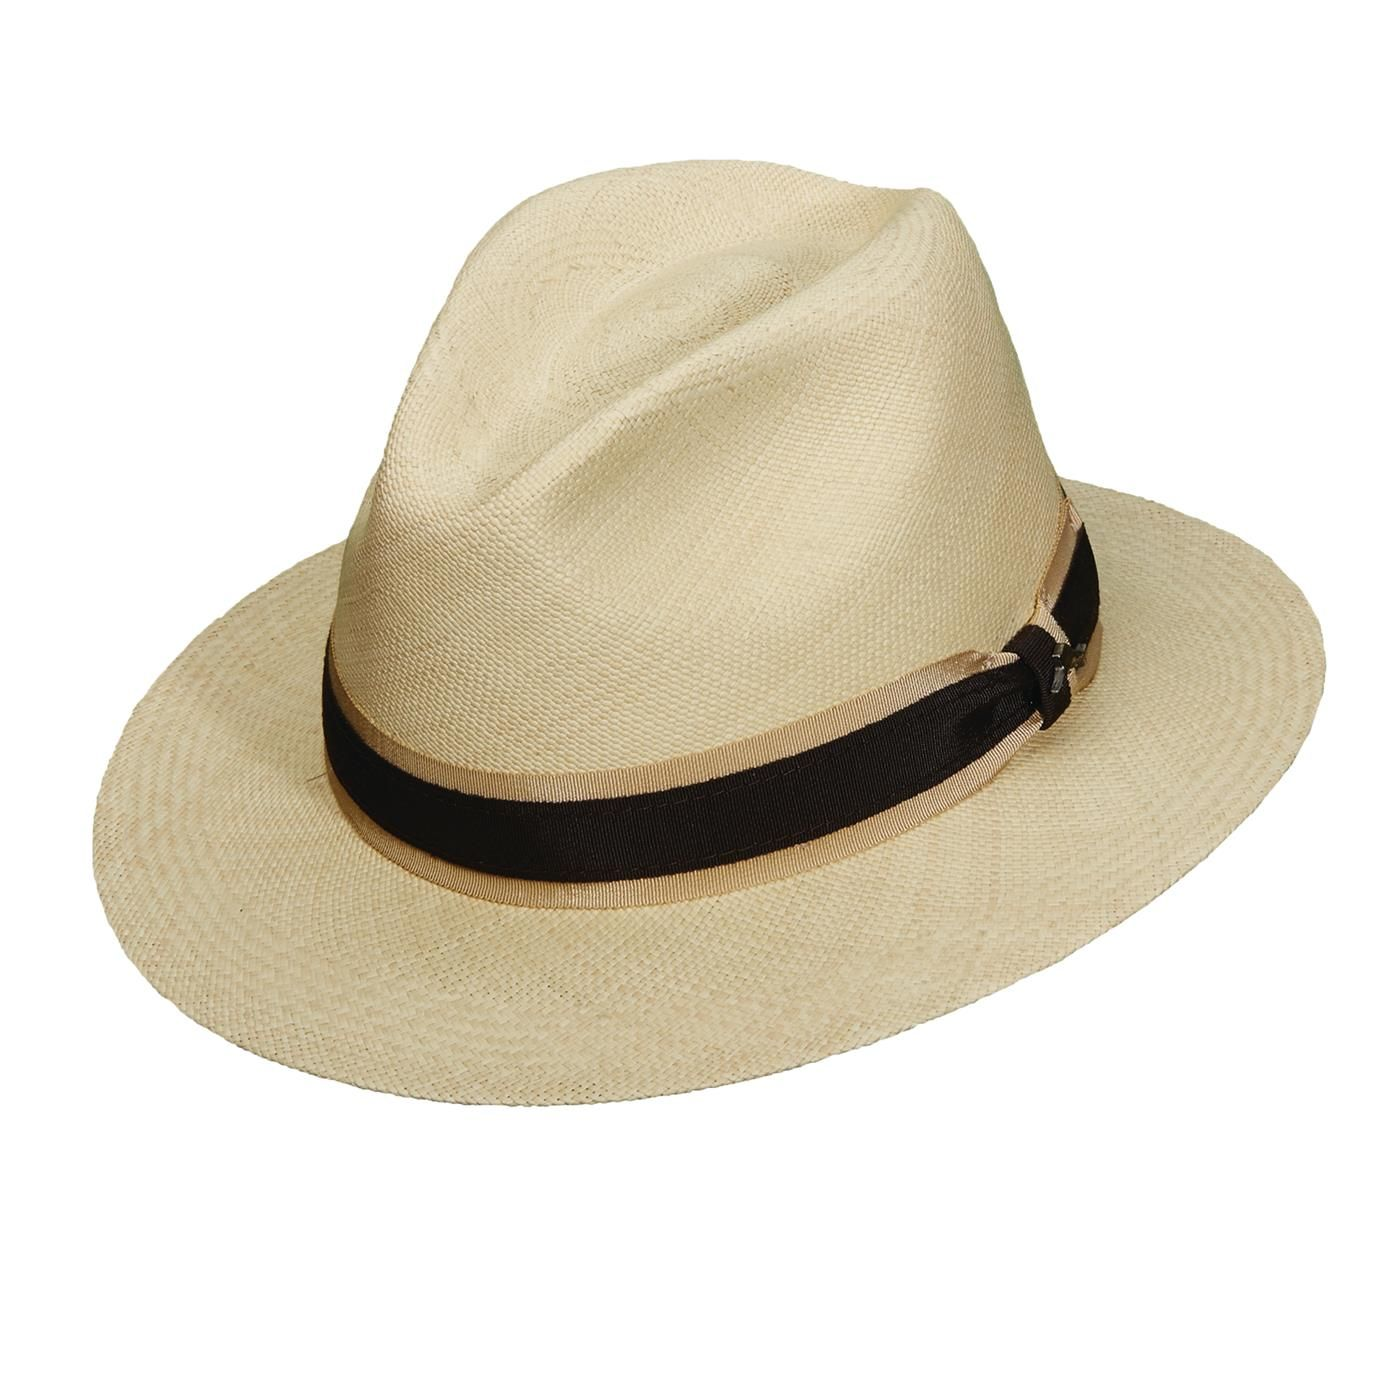 40bd7390d Tommy Bahama Handwoven Panama Fedora | New Products | Safari hat ...